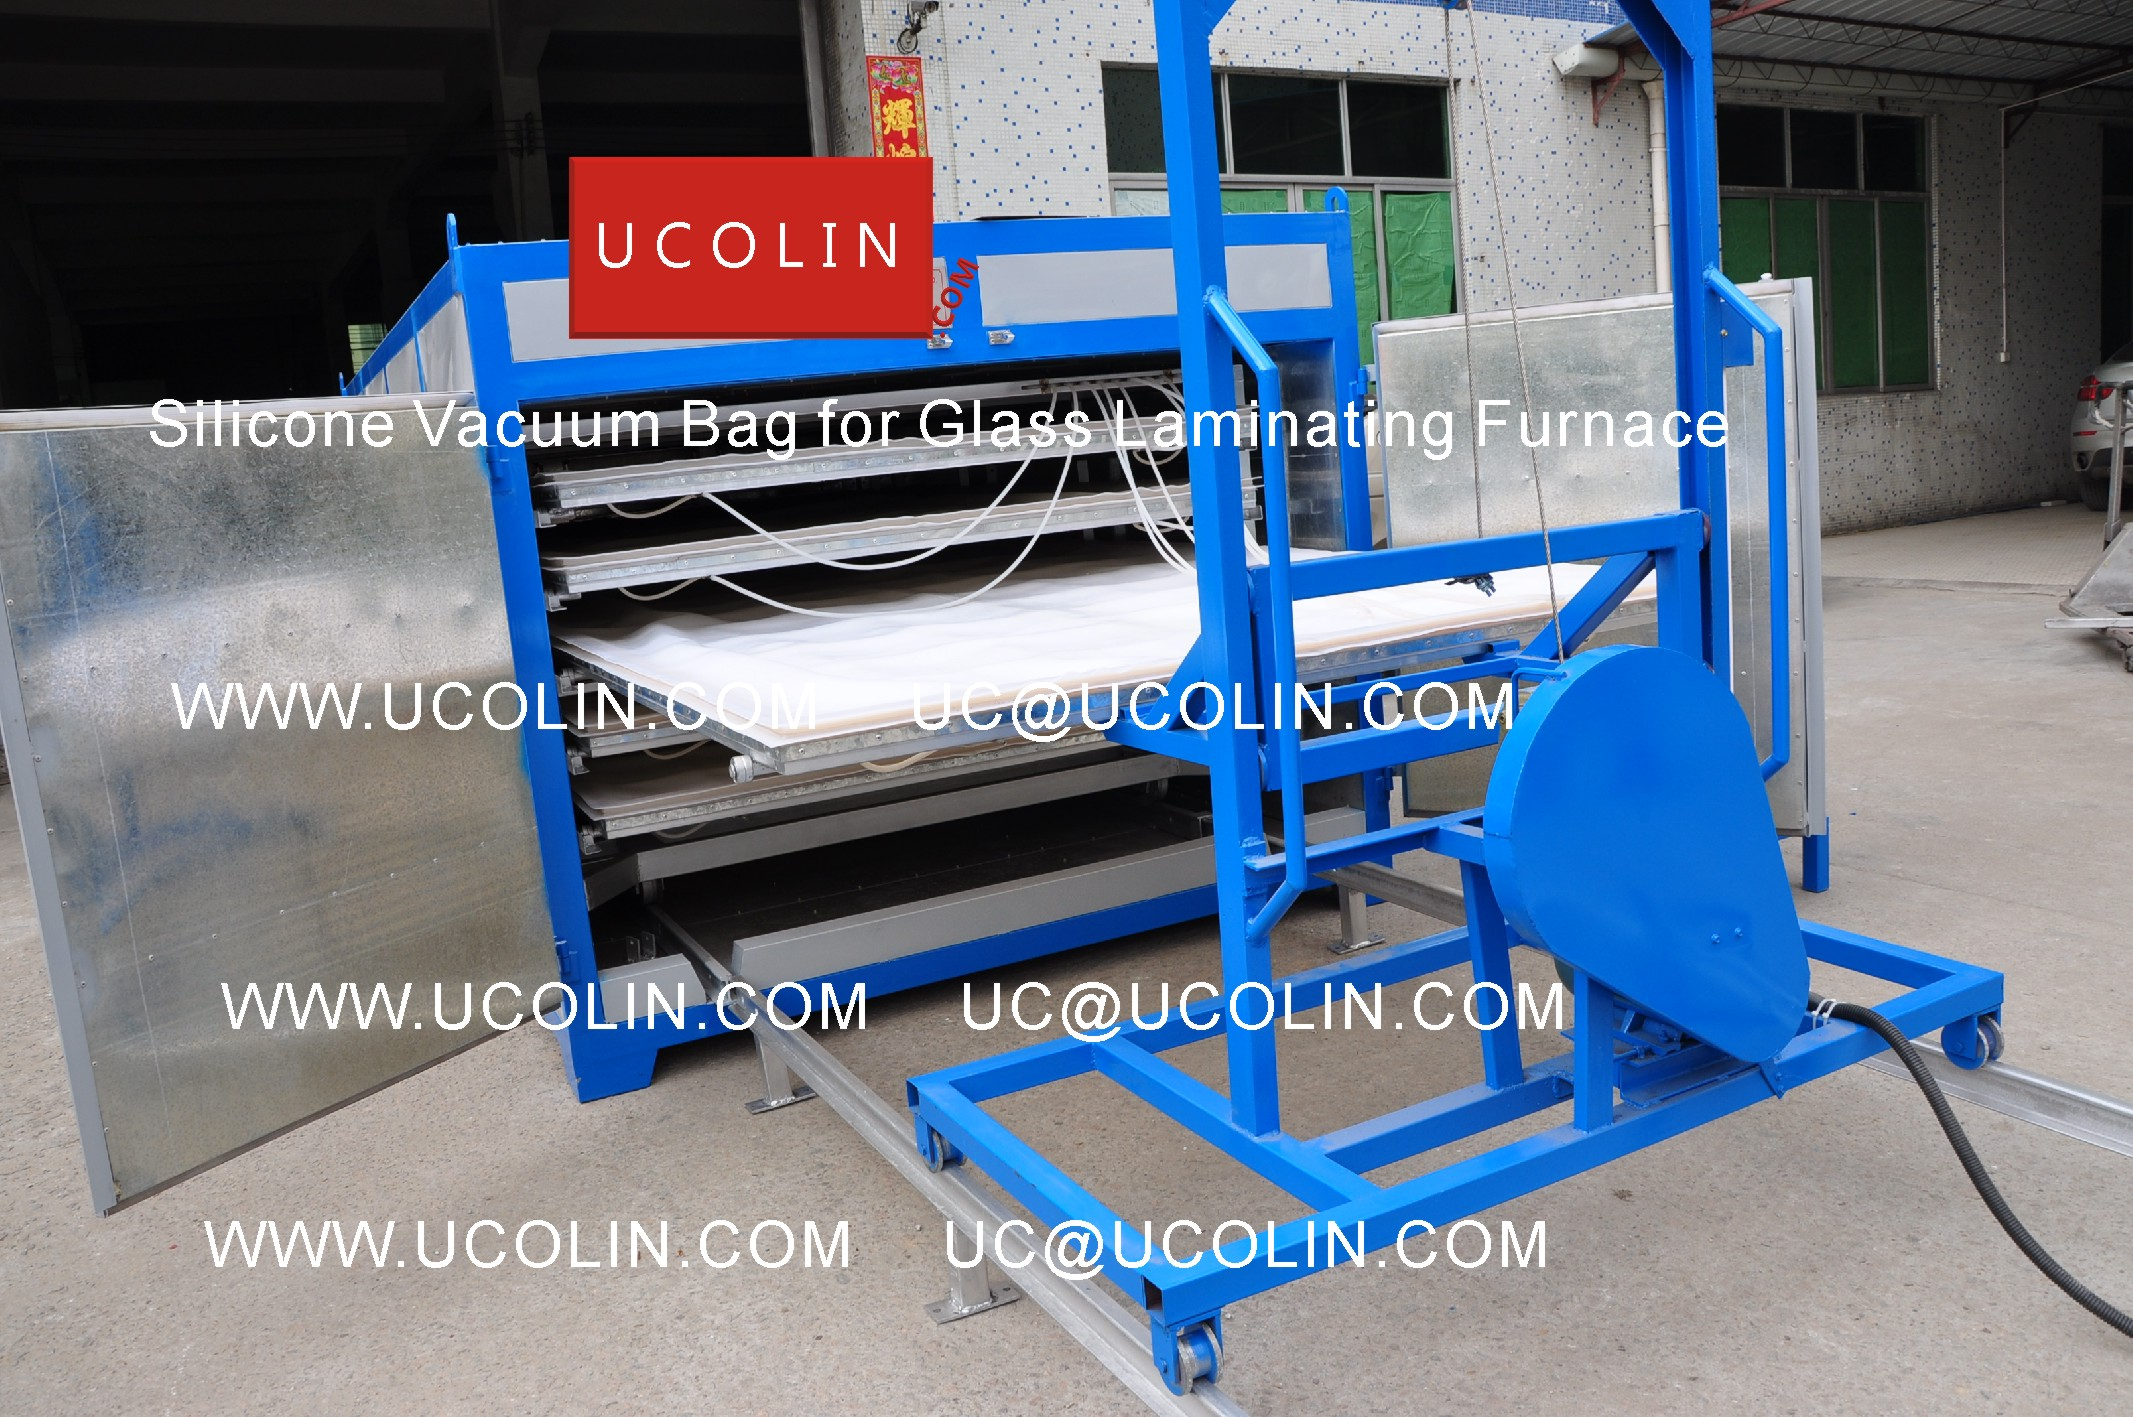 06 Application of Silicone Vacuum Bag for Glass Laminating Furnace